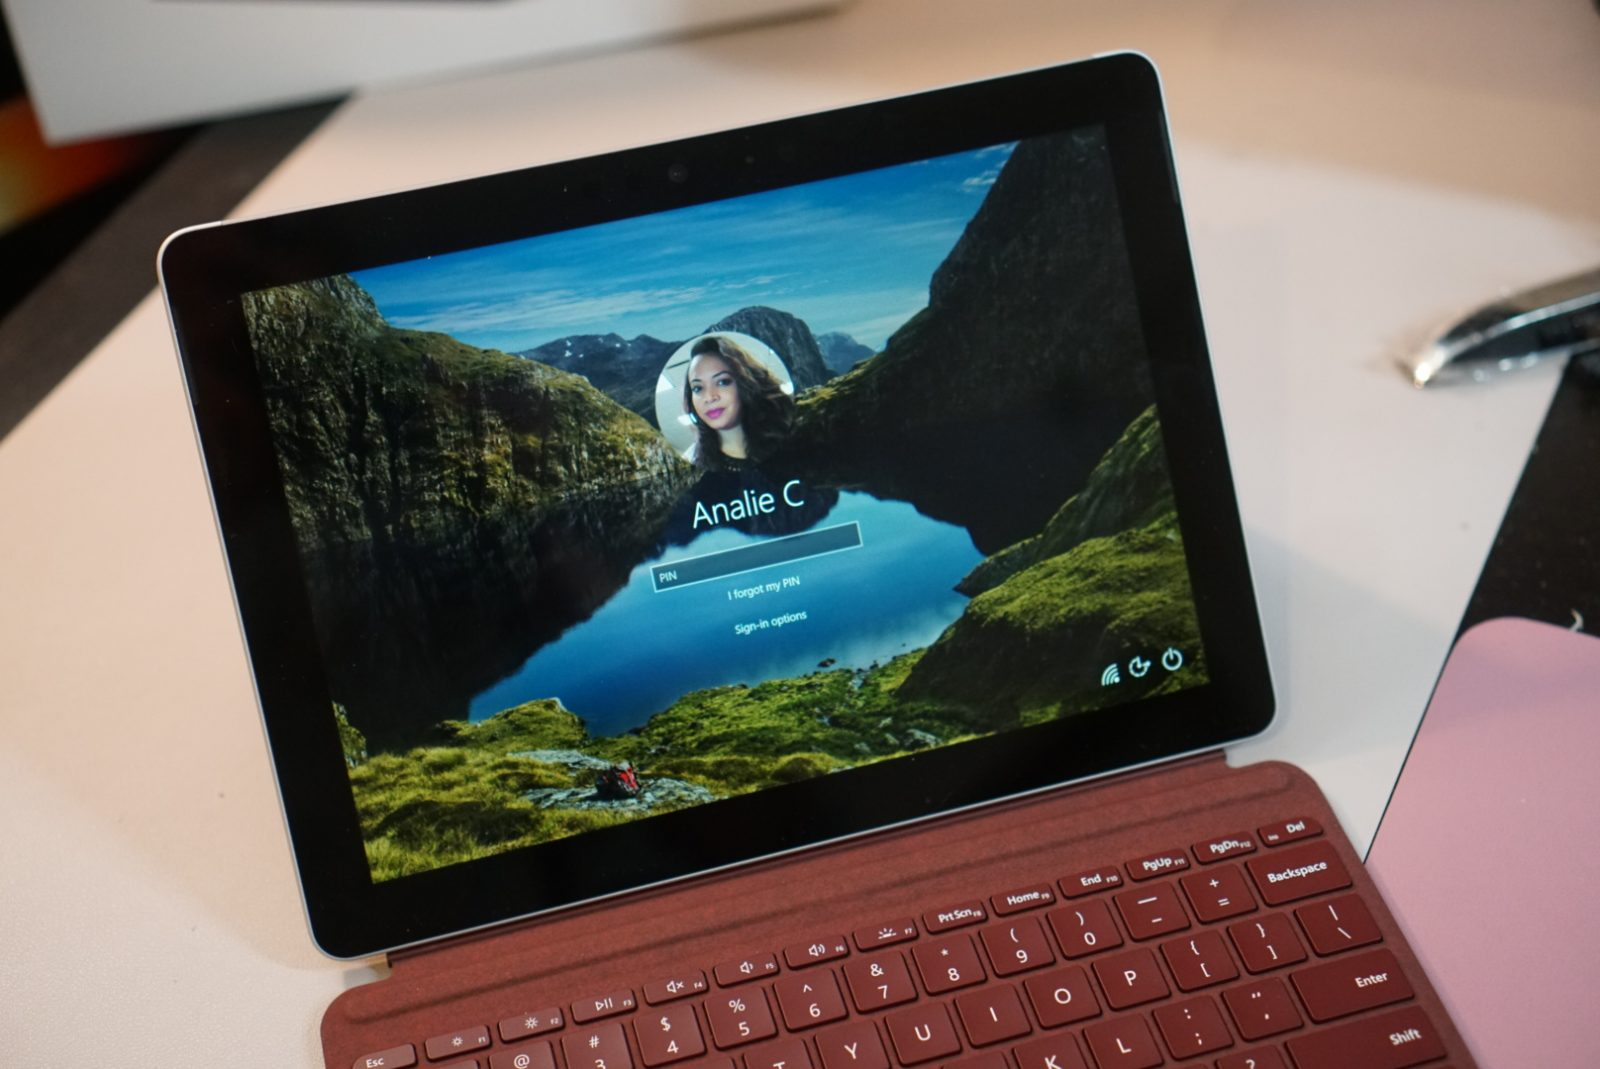 Microsoft Surface Go 2-in-1 Laptop